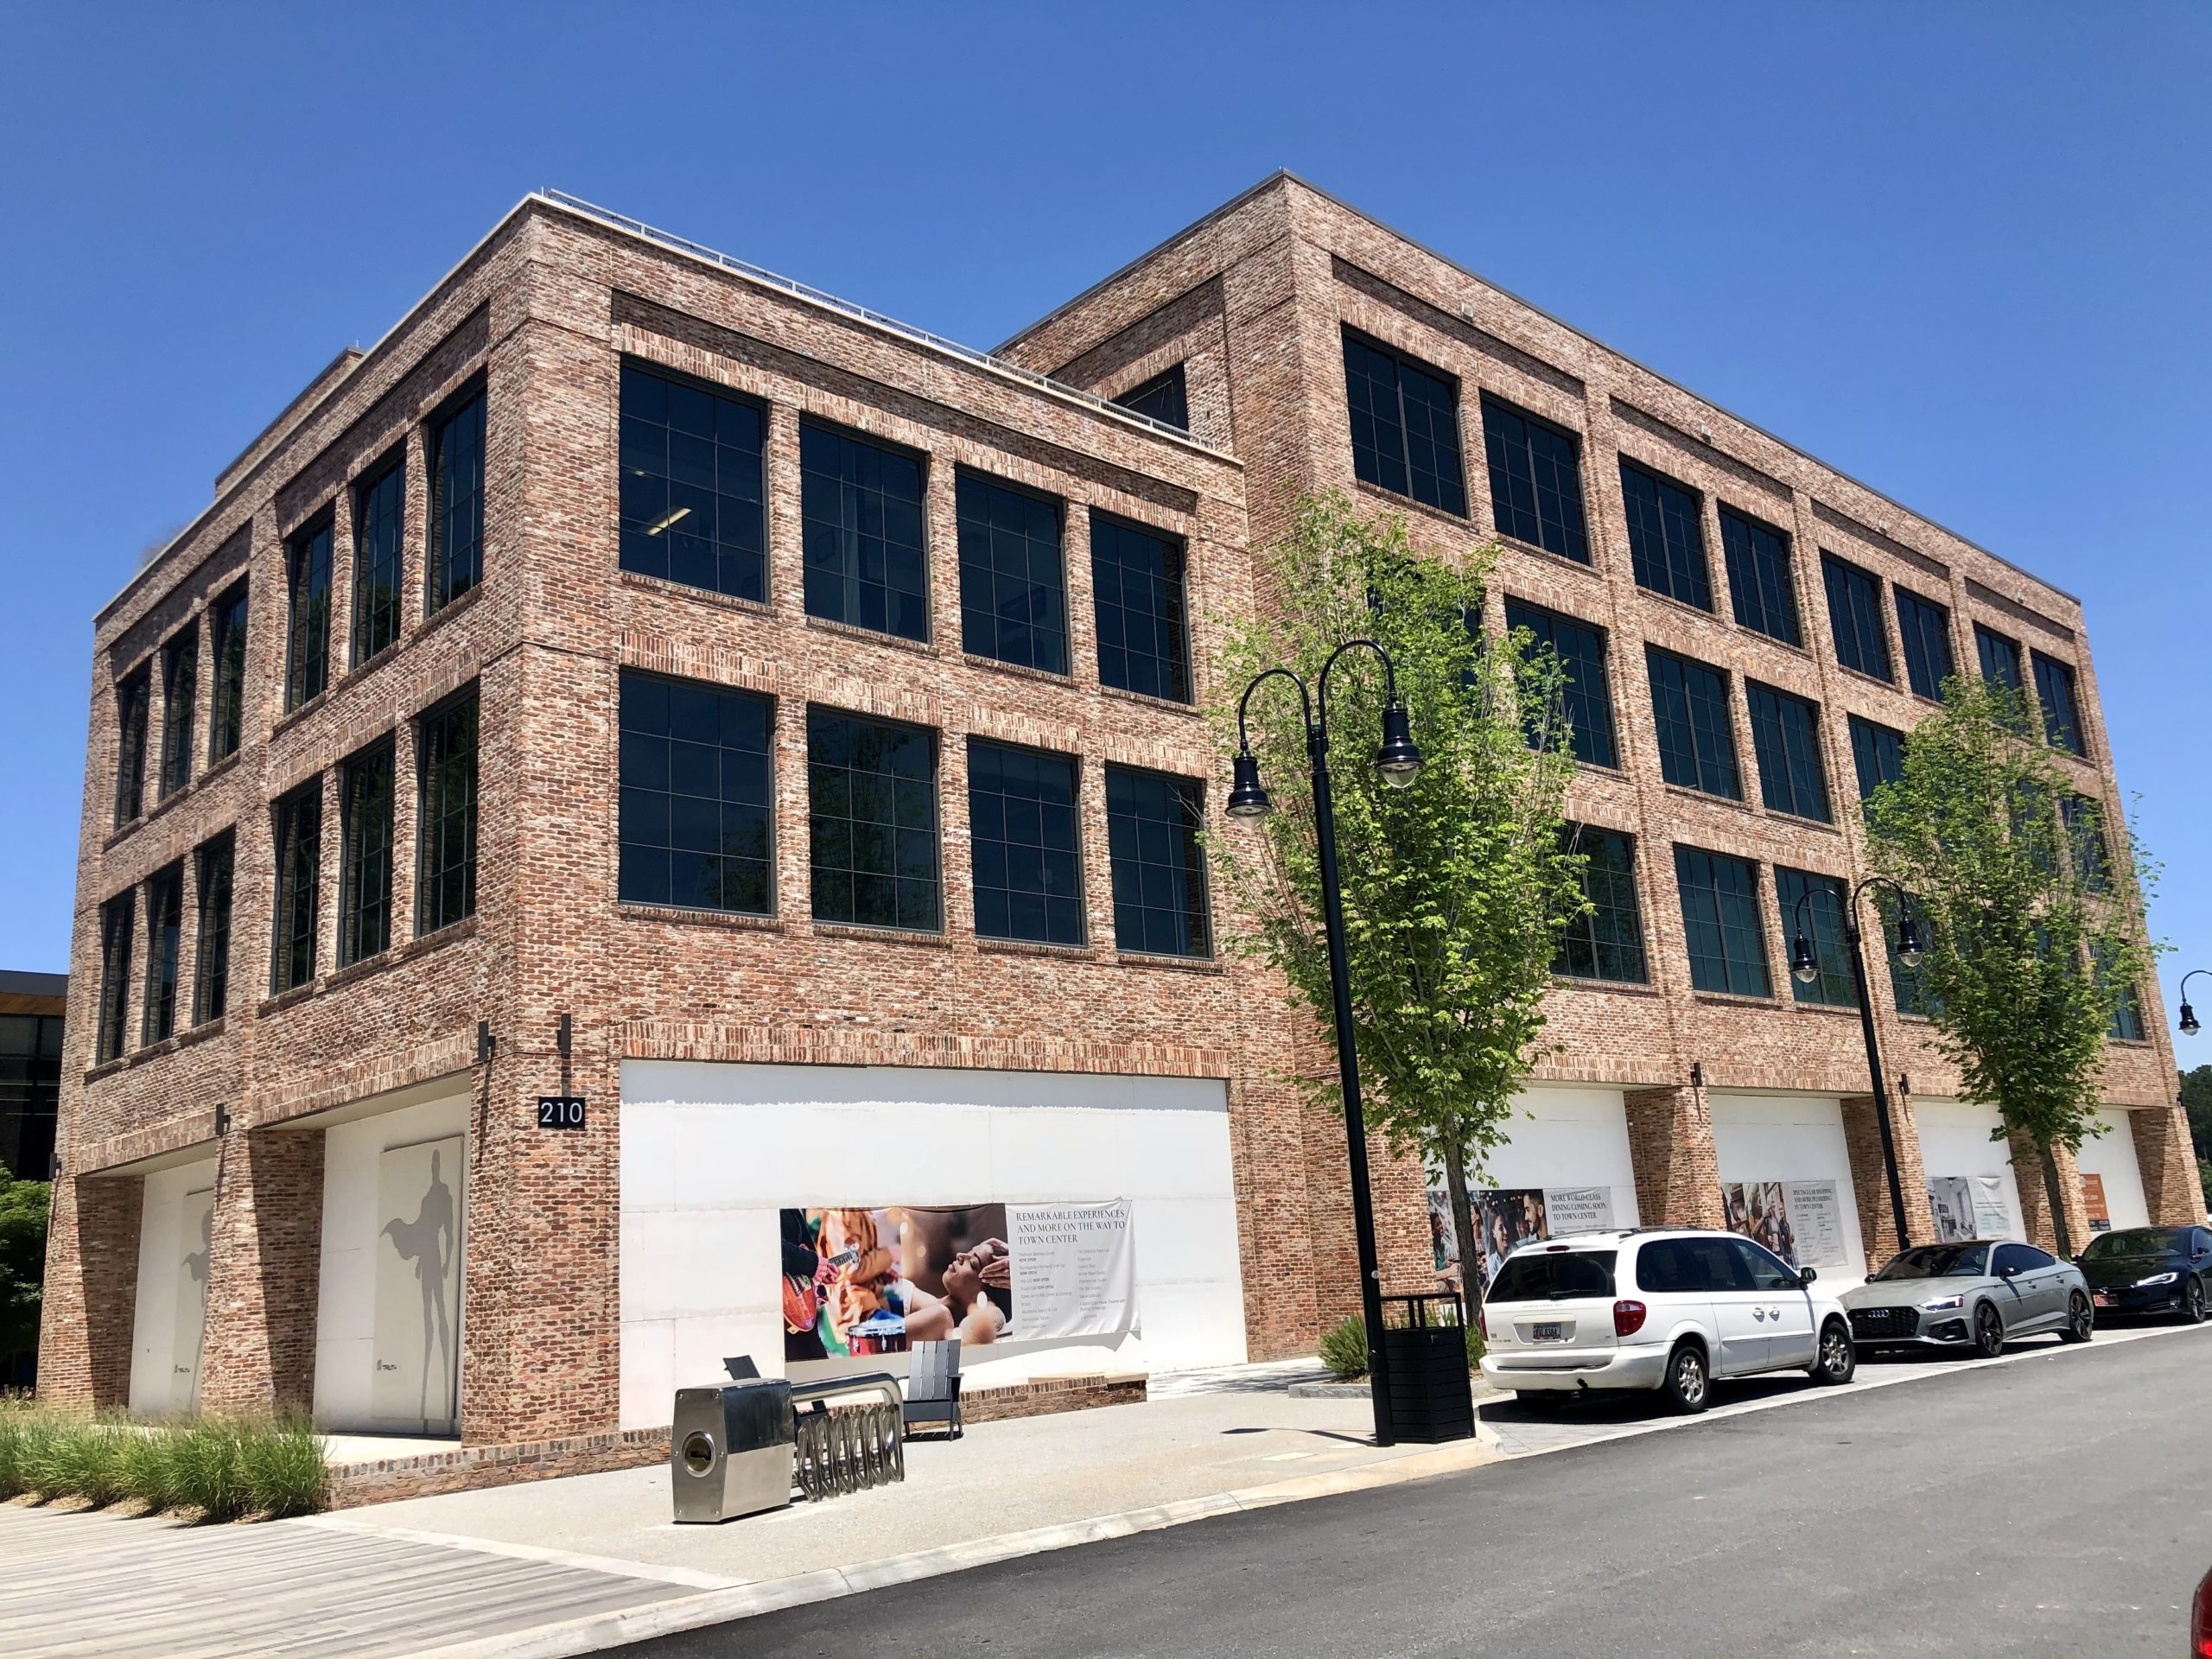 Roam is located on the first and second floor of the 210 Building in Town at Trilith